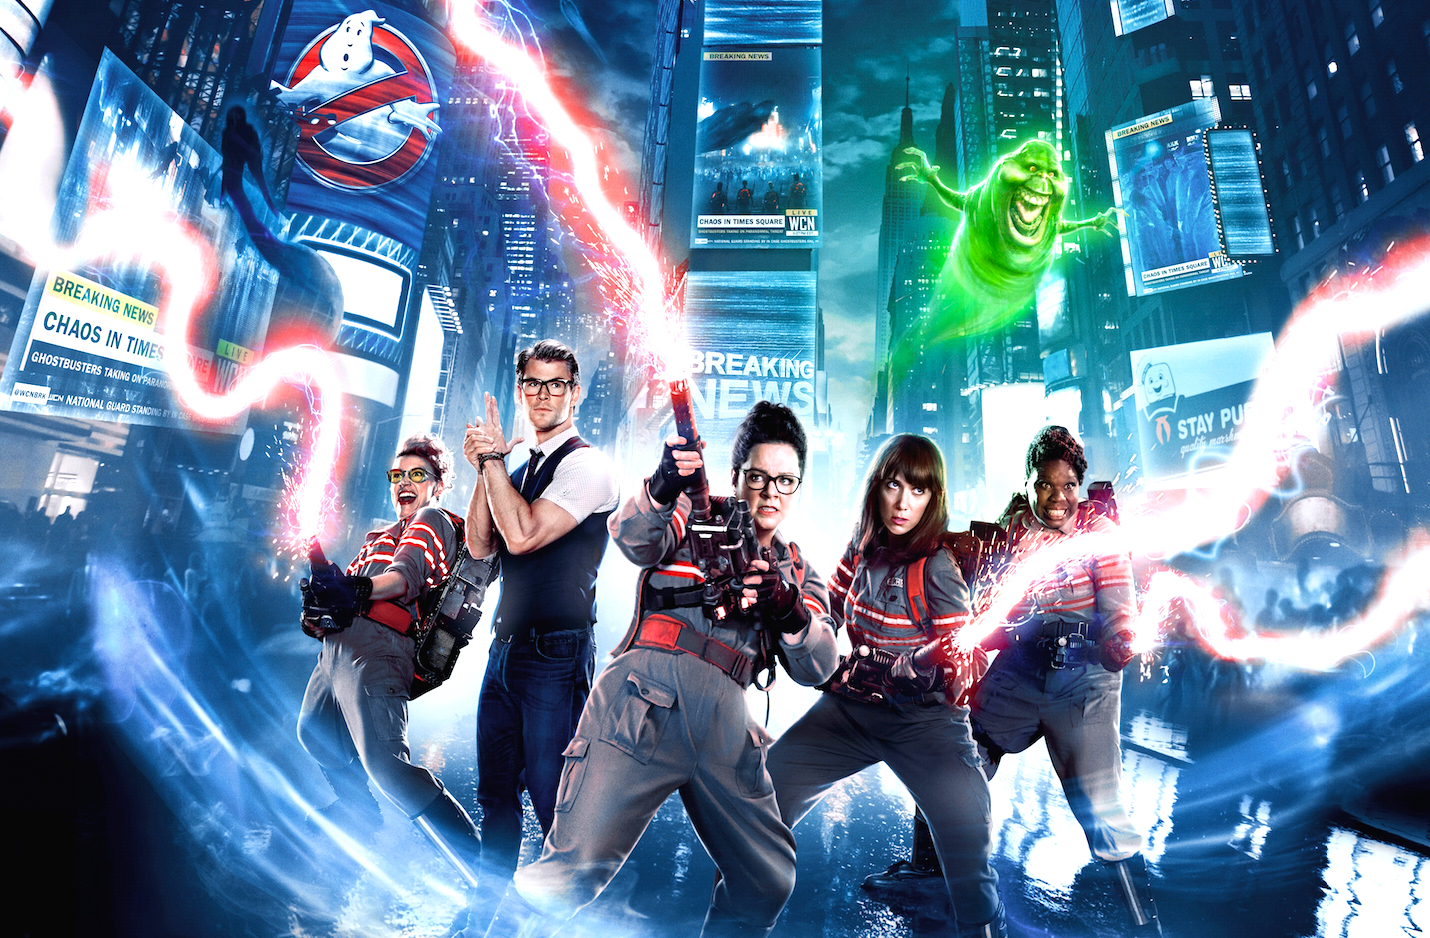 Ghostbusters 2016 Movie Review - Halloween Love